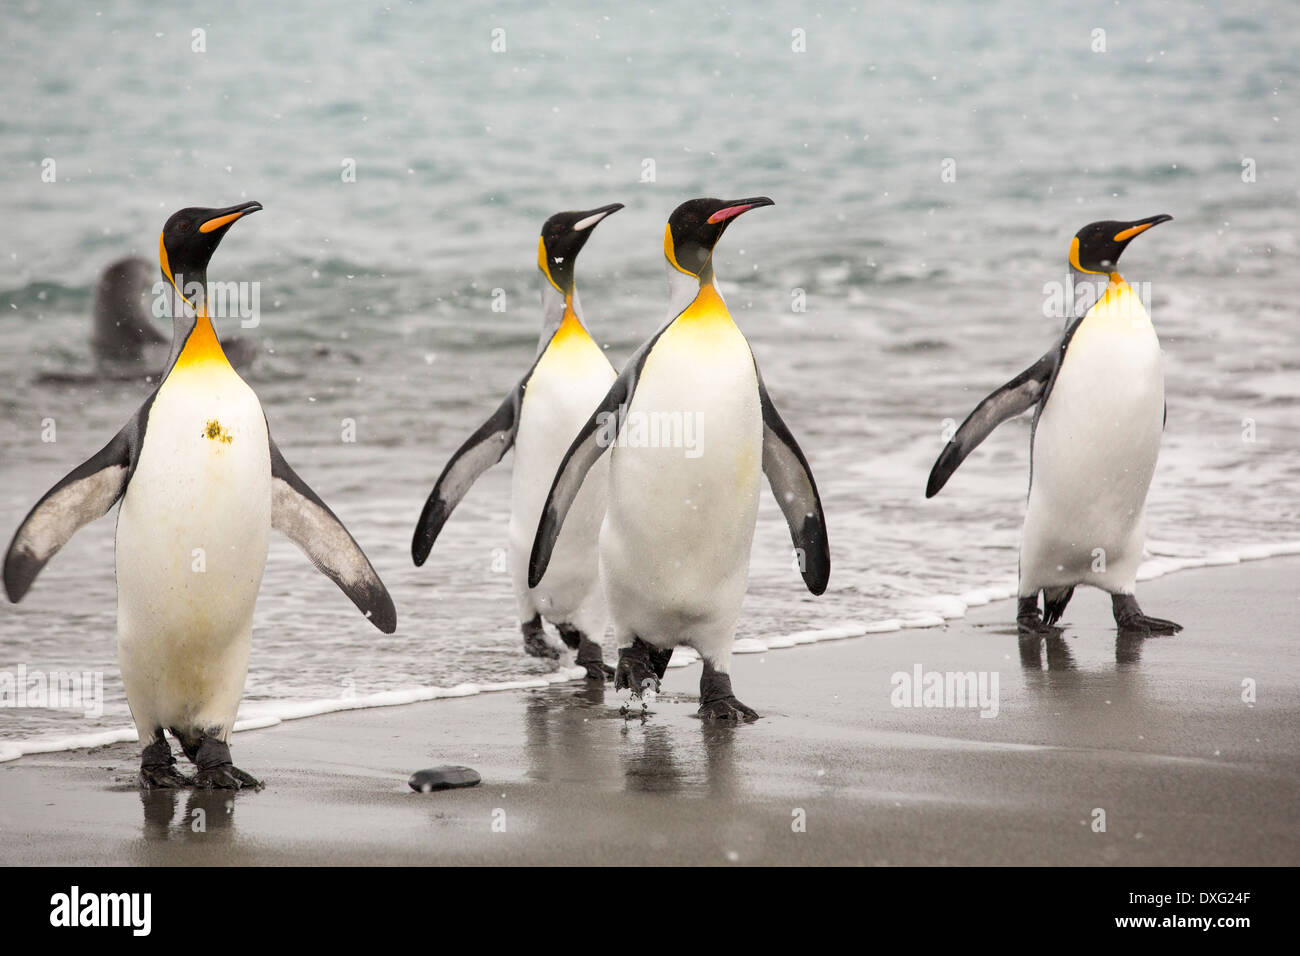 King Penguins emerge from a fishing trip out to see onto the beach in the world's second largest King Penguin colony on Salisbury Plain, South Georgia, Southern Ocean. - Stock Image